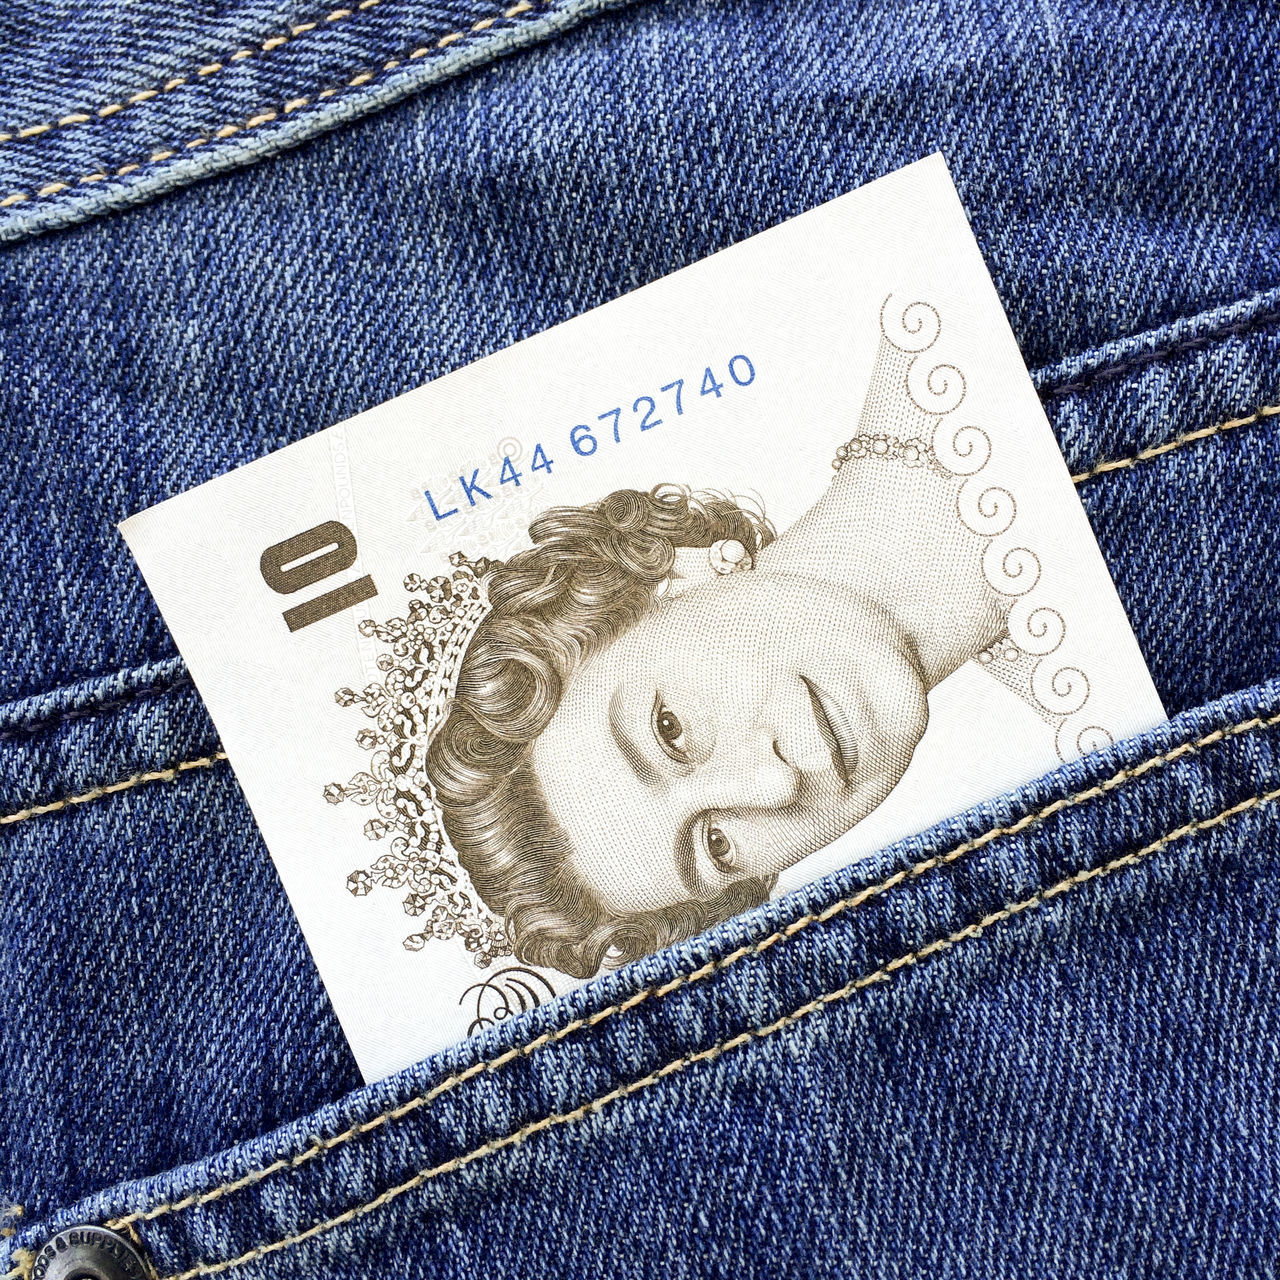 10 Pound Note Blue Blue Background Cash Denim Face Features Legal Tender Money Note Paper Pocket  Pocket Money Protruding Queen Queen Elizabeth  Queens Head Single Object Symbol Ten Pound Note